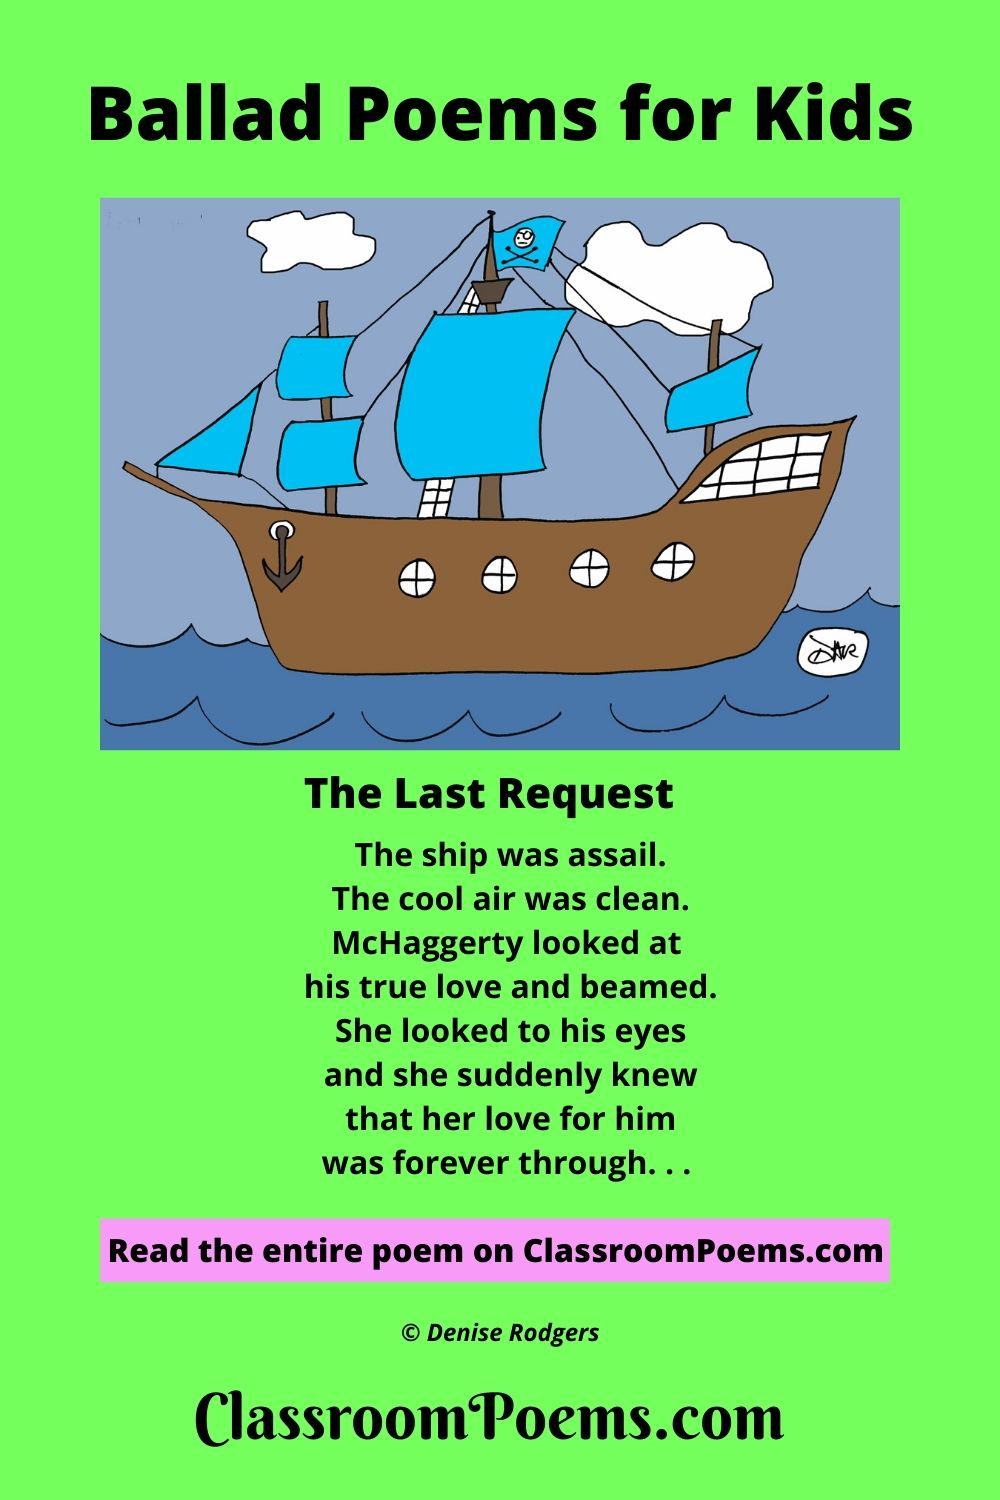 Pirate ship drawing. Ballad poems for kids.